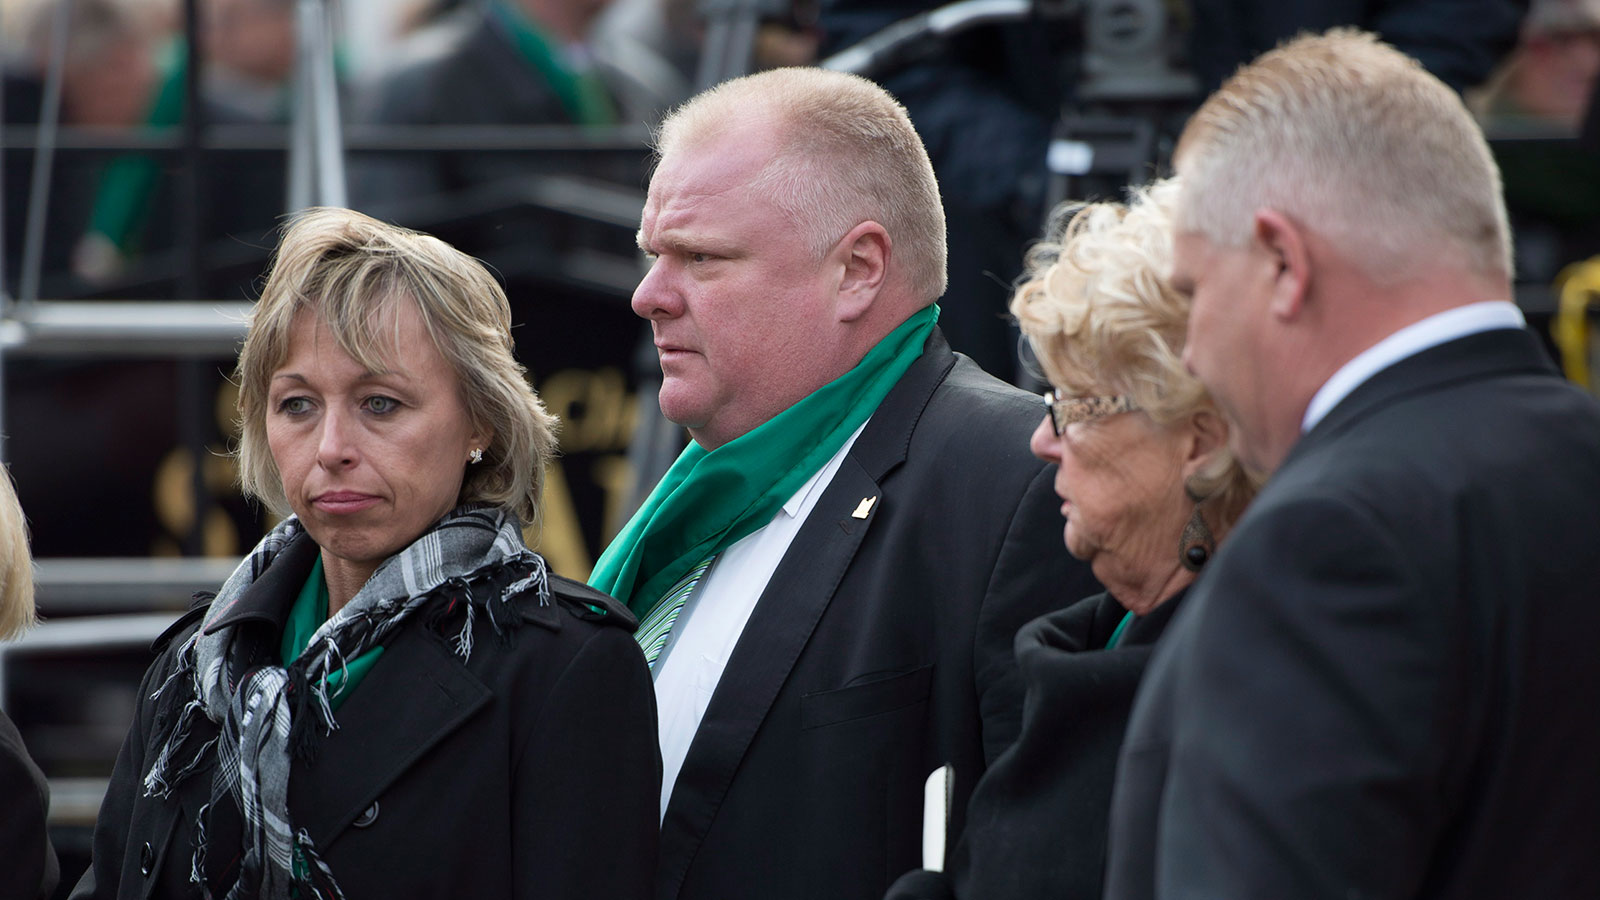 Mayor Rob Ford, second from left, with his wife Renata, left, mother Diane, and brother Doug, following the state funeral for Jim Flaherty in Toronto on Wednesday, April 16, 2014. (Darren Calabrese/CP)